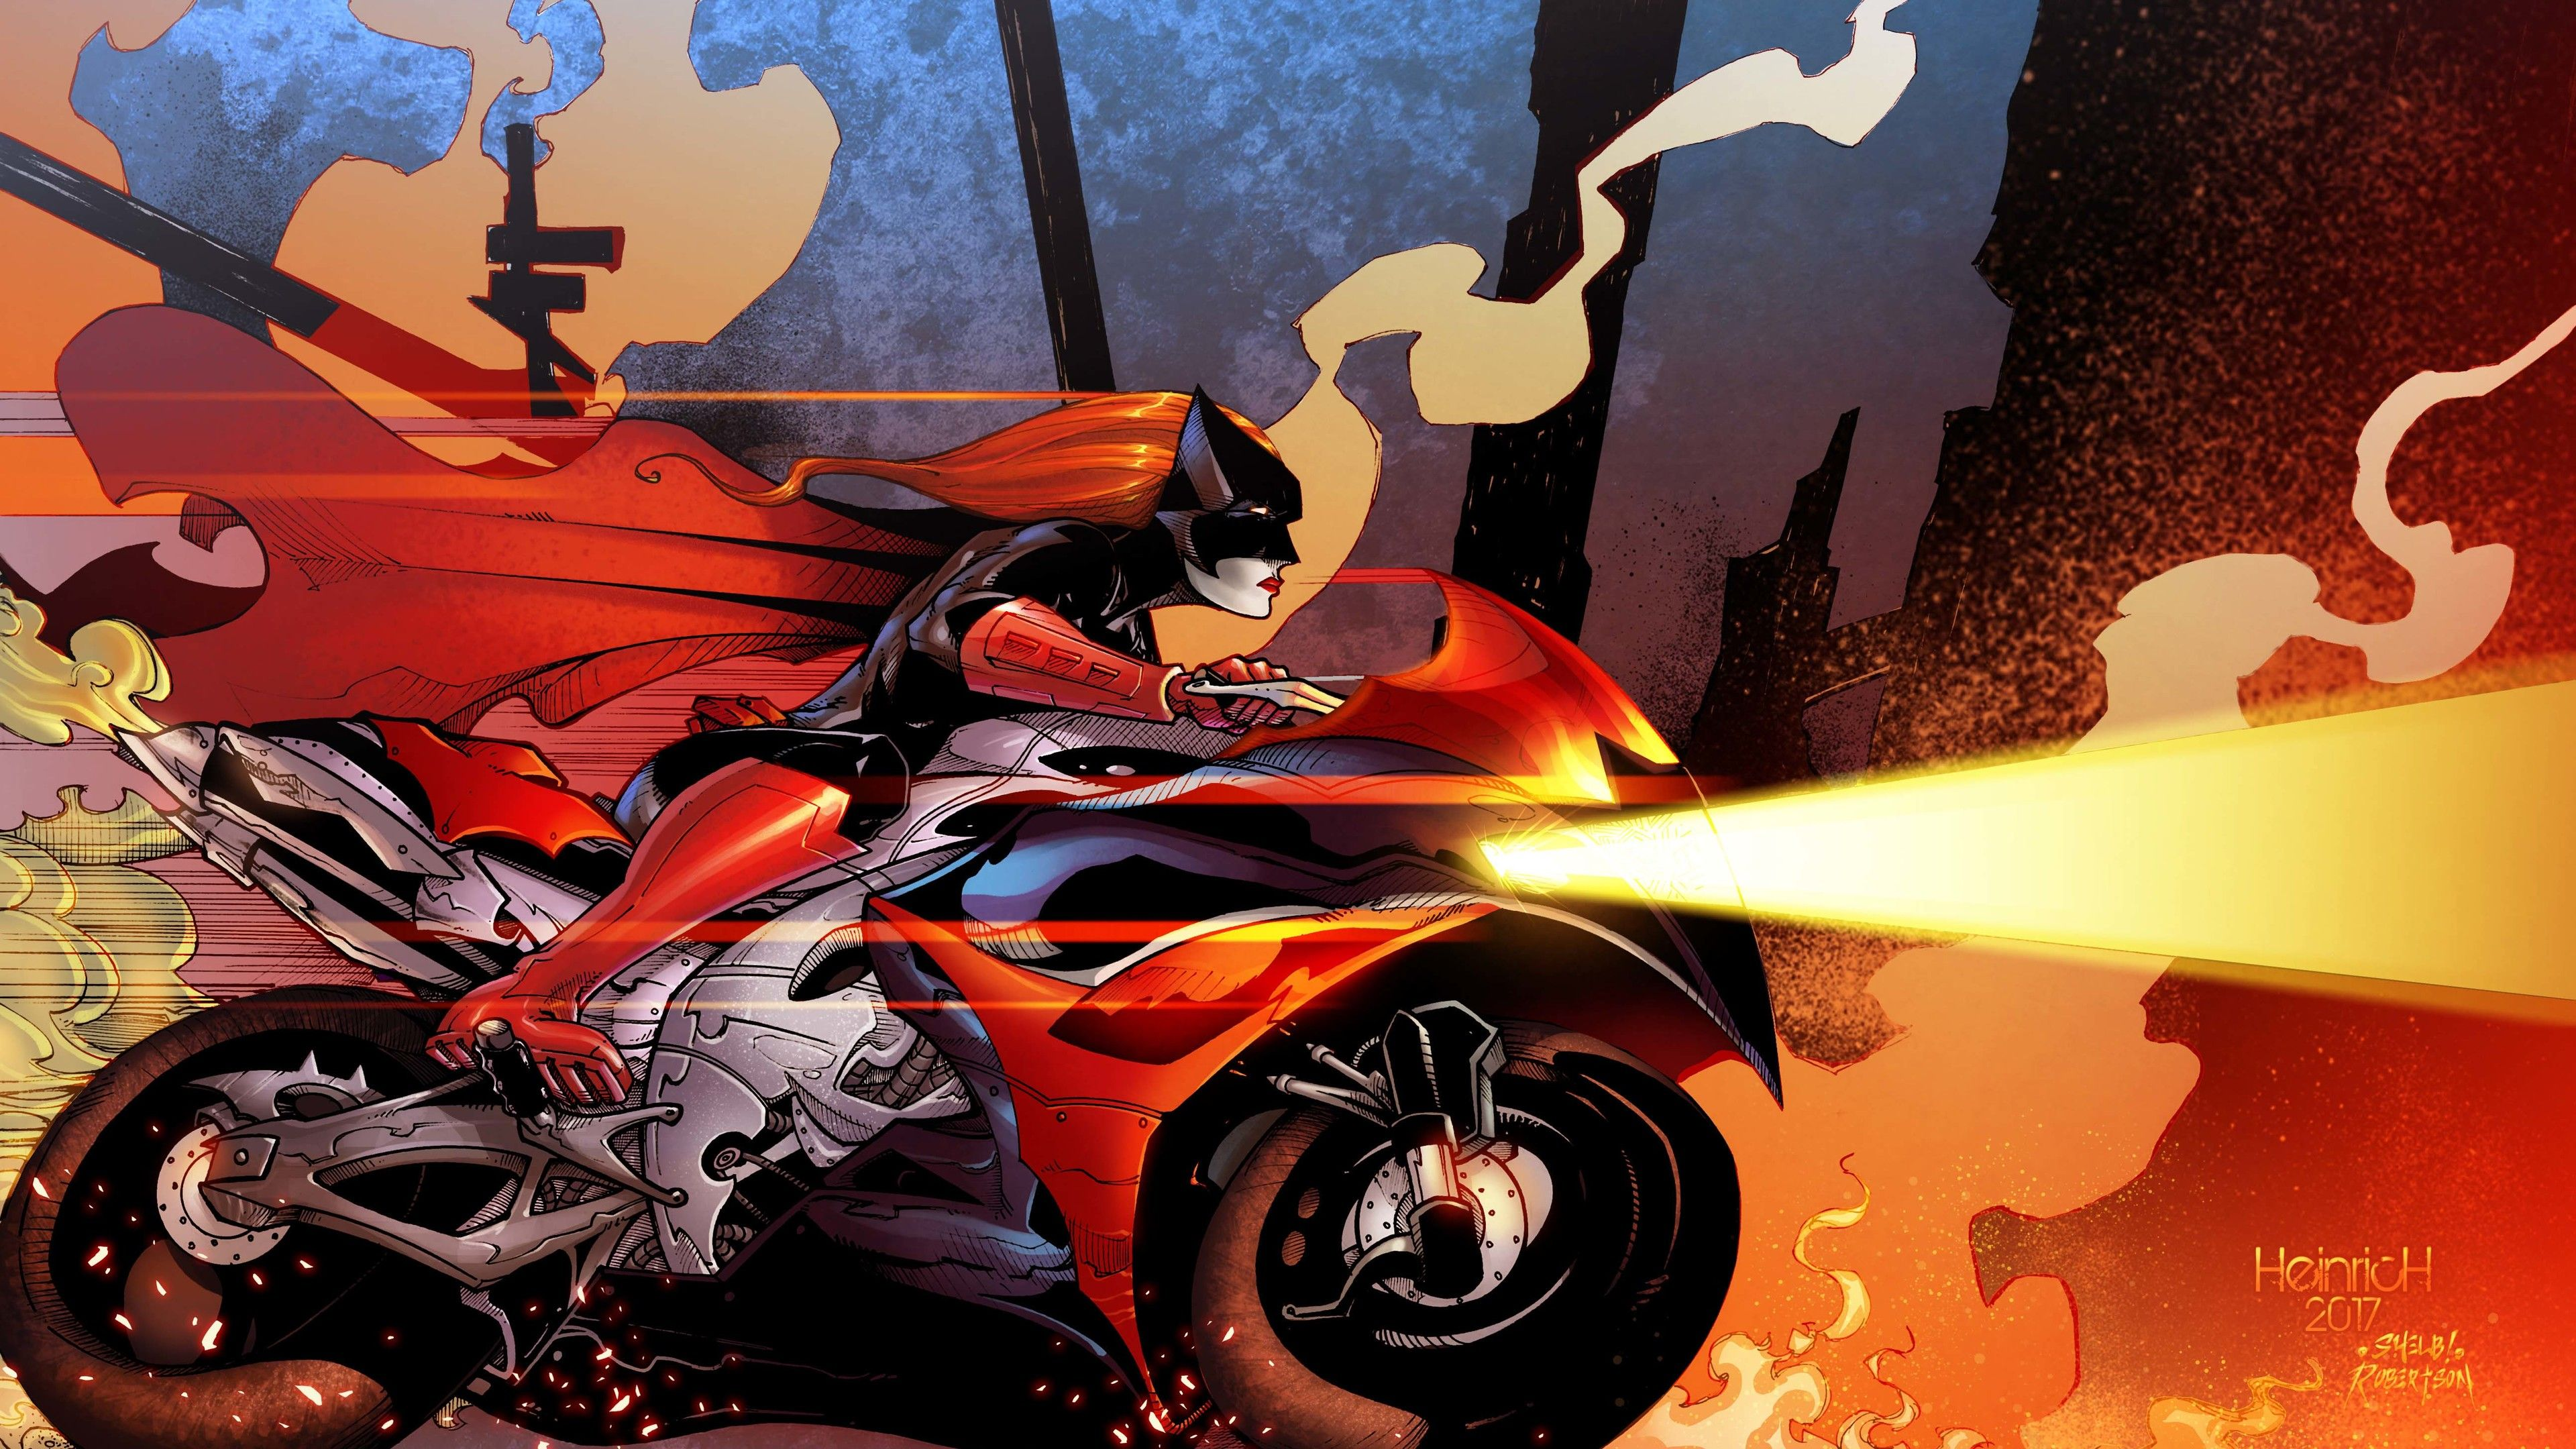 Batwoman Driving Bike 5k Artwork Superheroes Wallpapers Hd Wallpapers Digital Art Wallpapers Batwoman Wallpapers Artwork Wallpap Art Wallpaper Art Batwoman